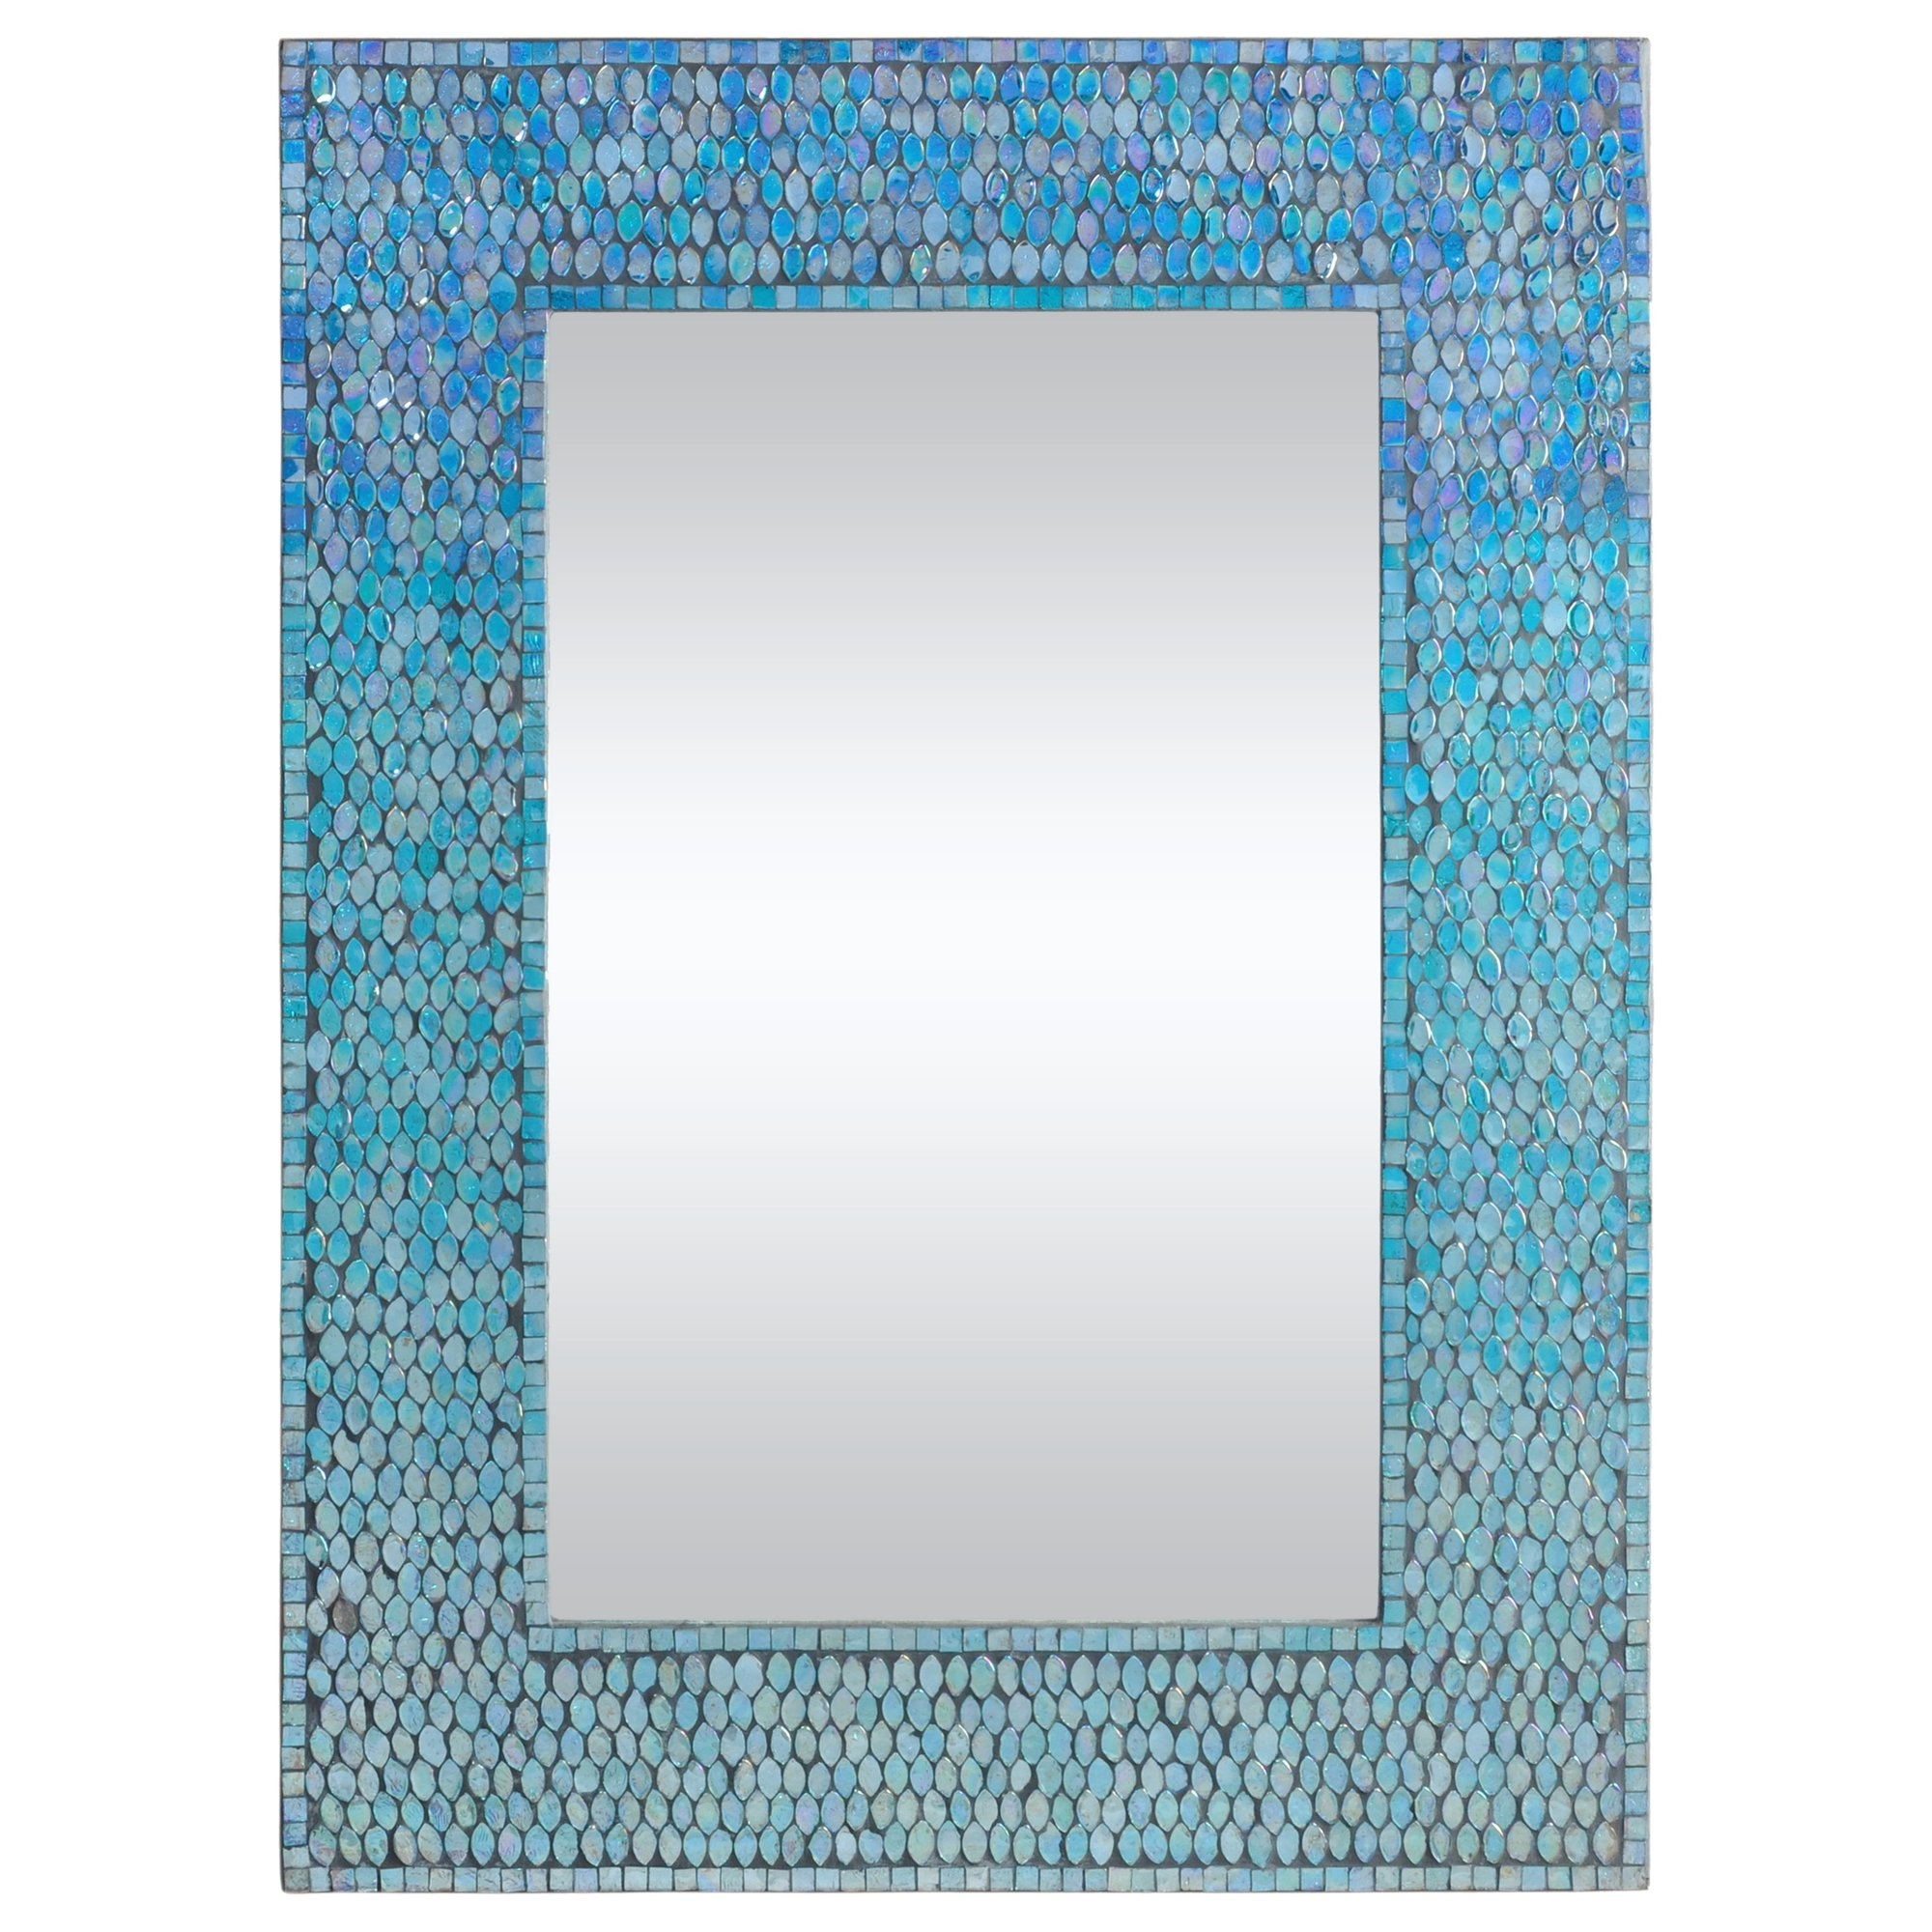 Ren Wil Catarina Accent Wall Mirror Reviews Wayfair Within Mirror With Blue Frame (View 9 of 15)